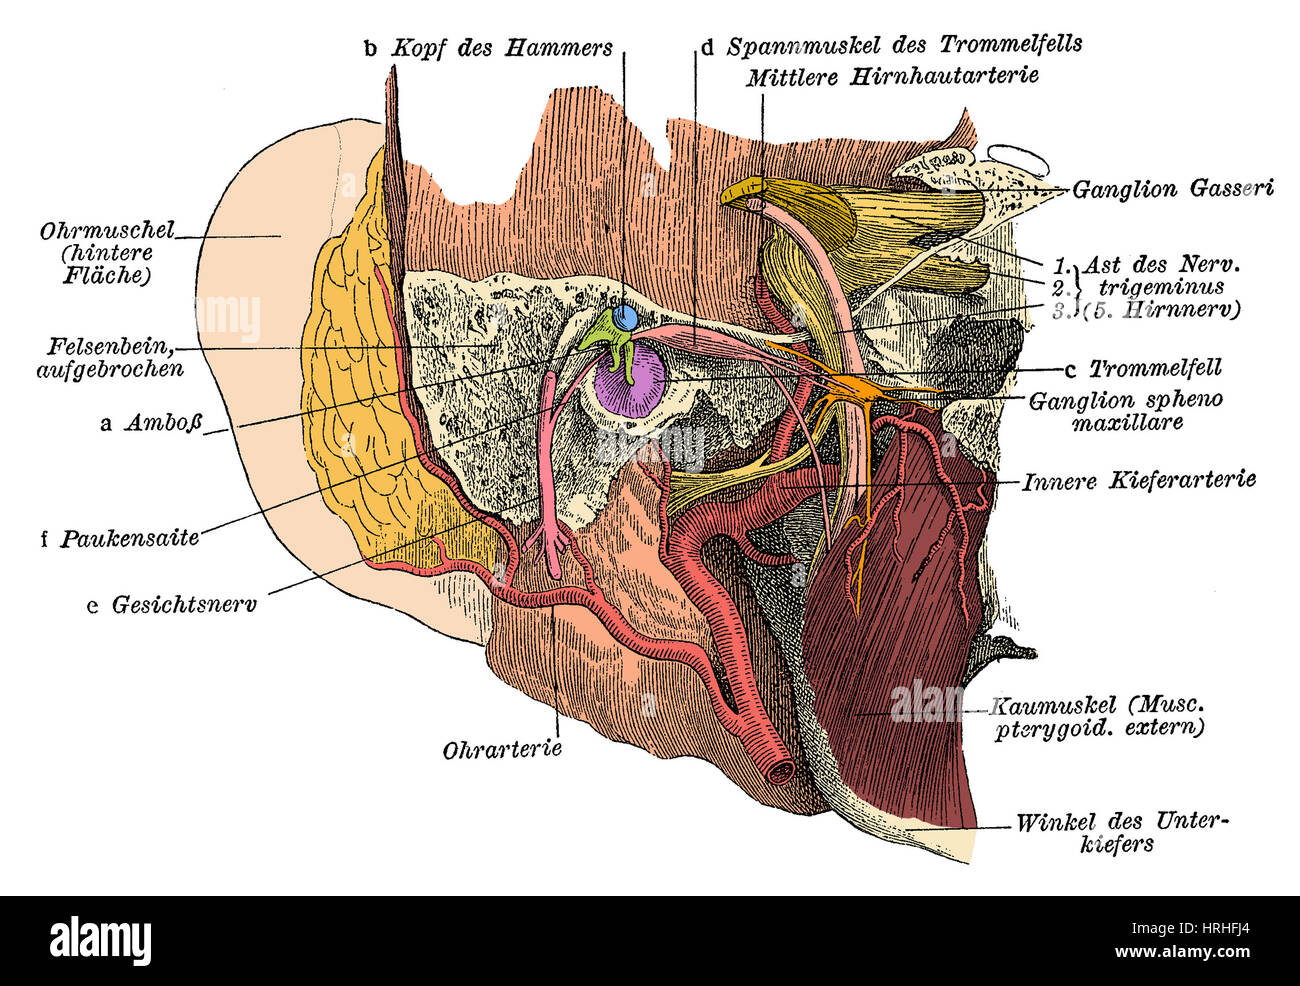 Facial Arteries Stock Photos & Facial Arteries Stock Images - Alamy